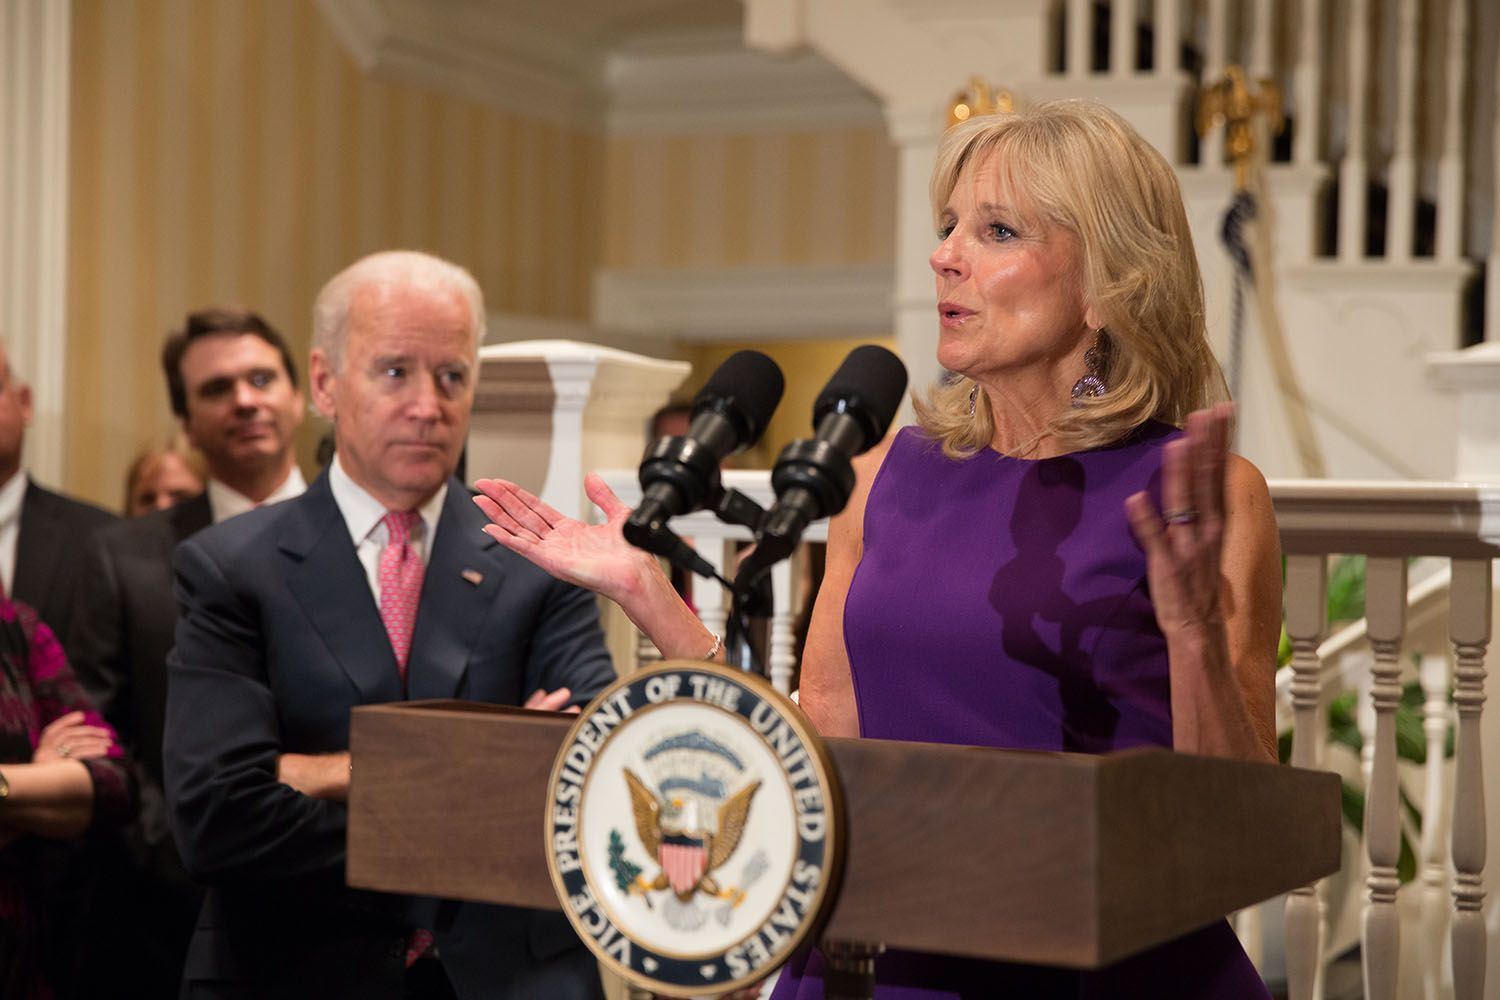 Dr. Jill Biden gives remarks at a breast cancer awareness month reception with Vice President Joe Biden, in the living room at the Naval Observatory Residence in Washington, D.C., Nov. 5, 2013. (Official White House Photo by David Lienemann)